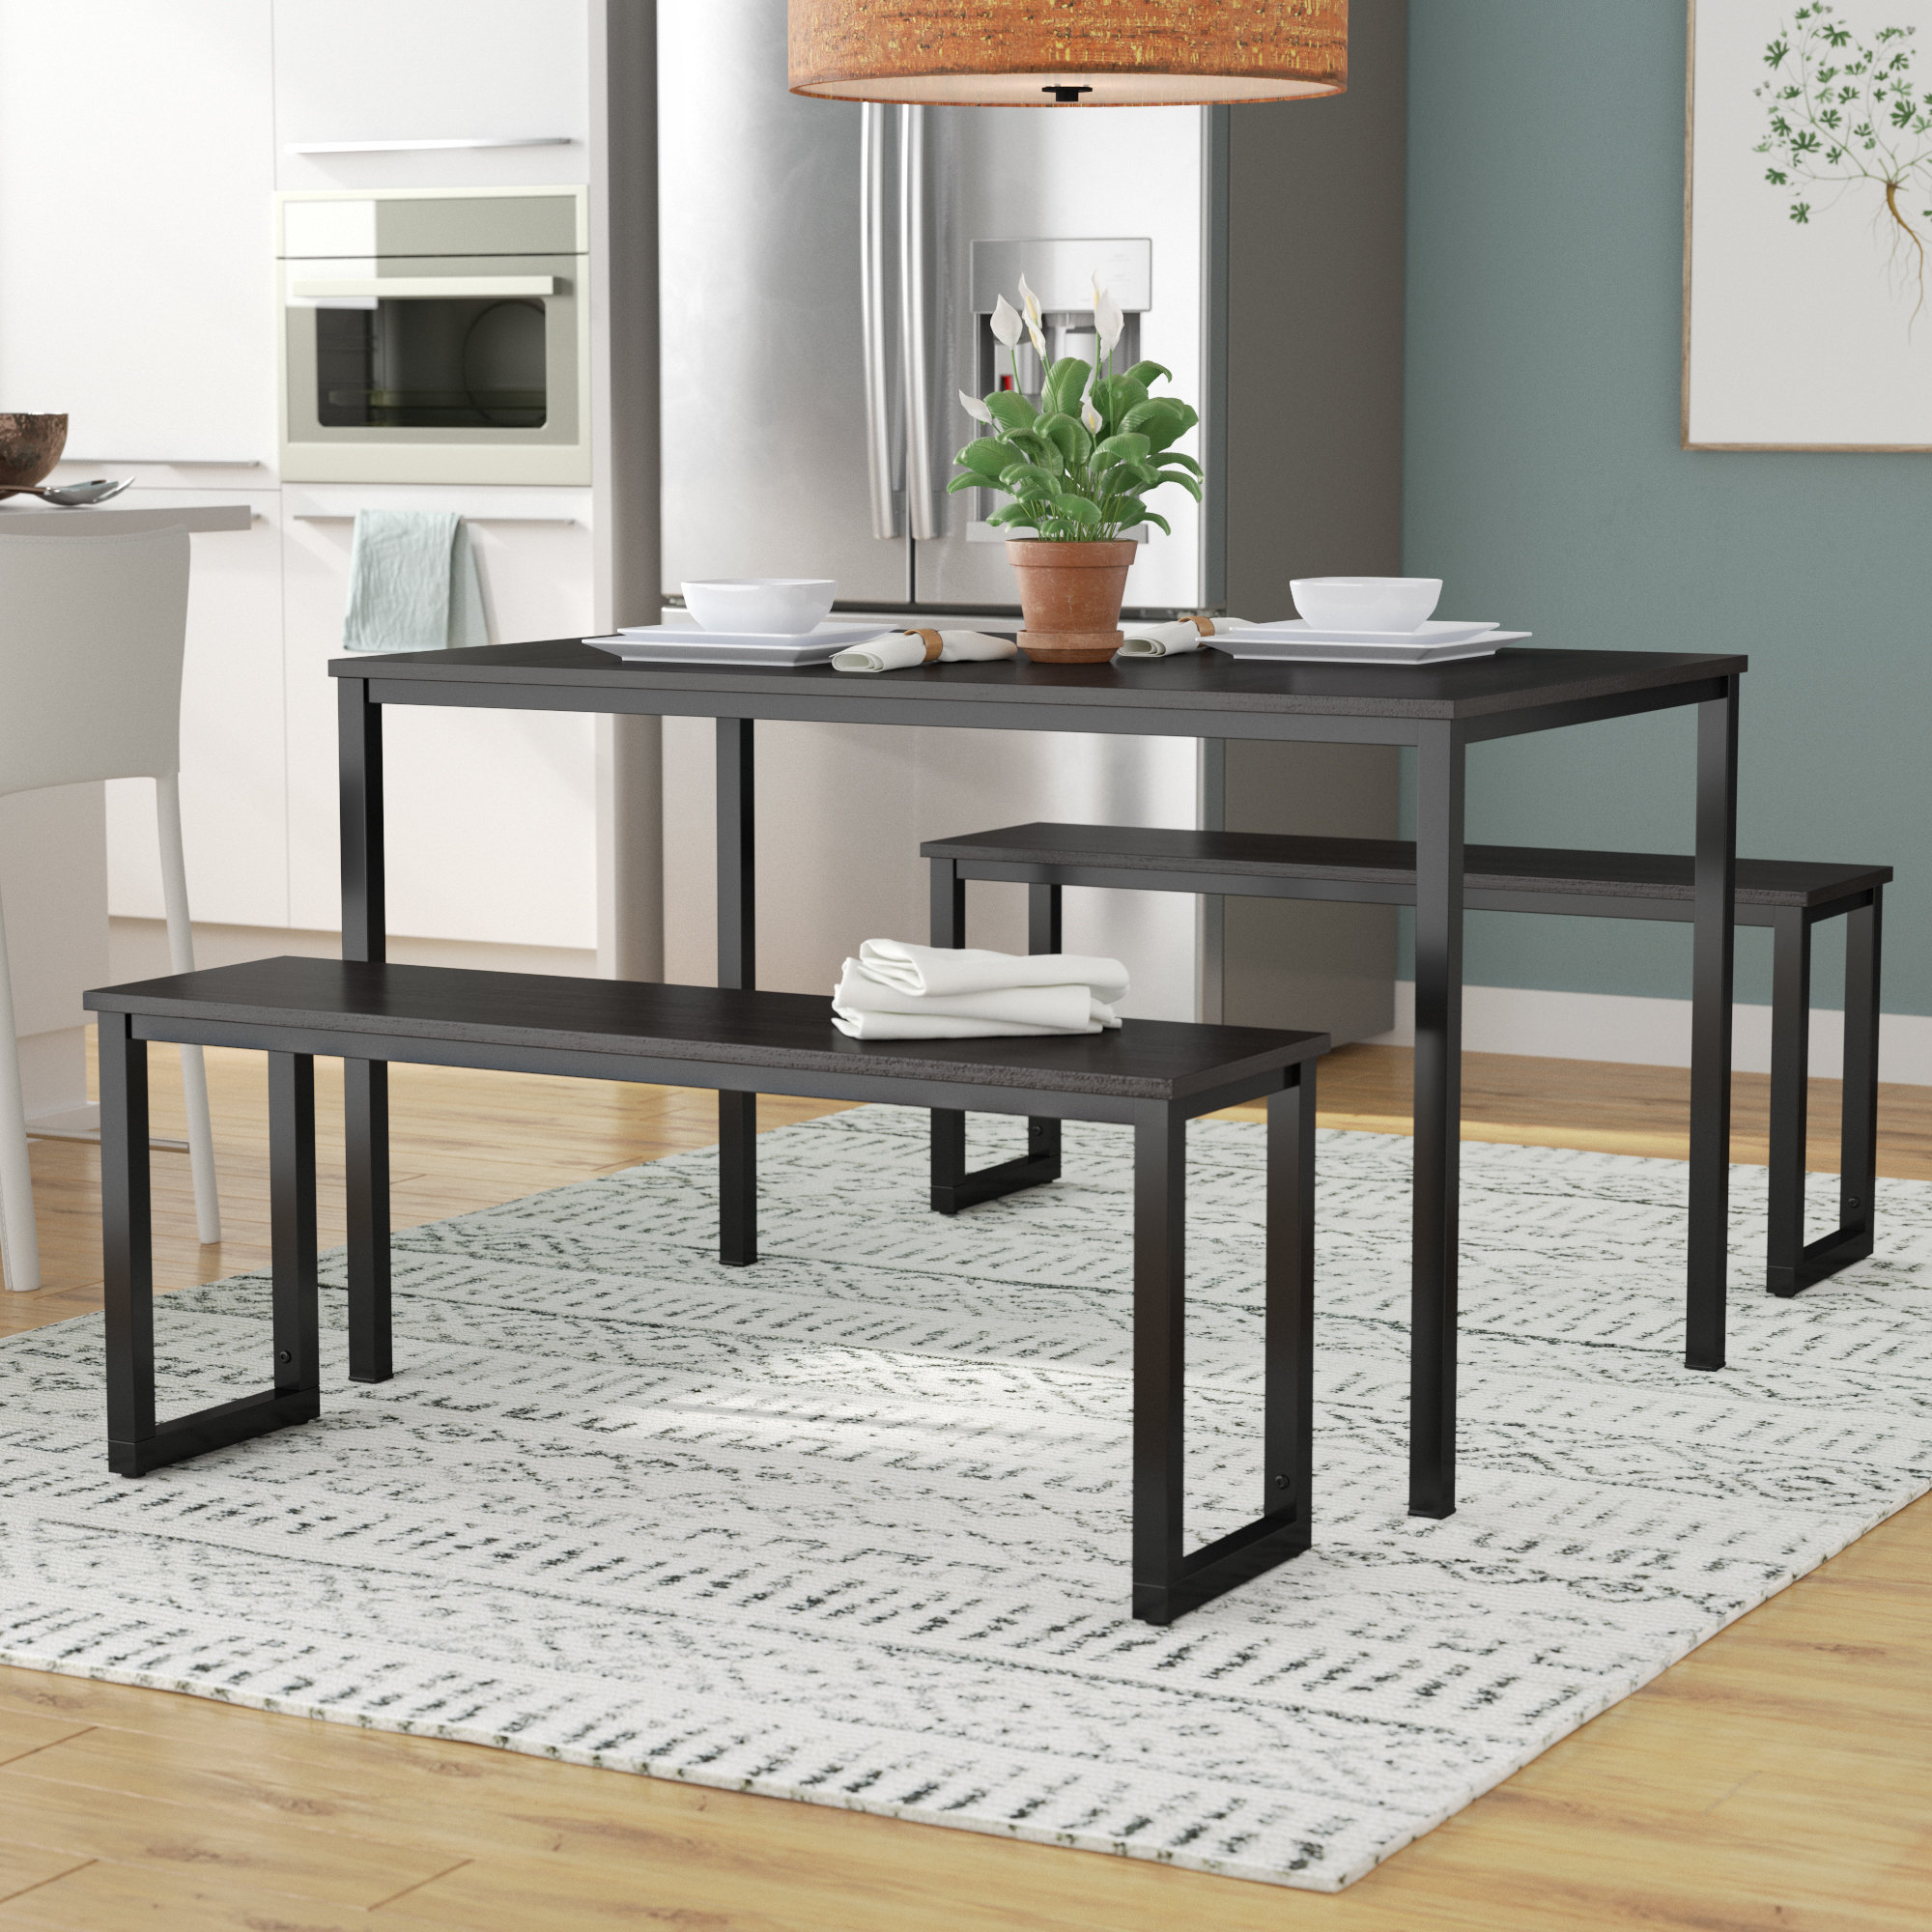 Frida 3 Piece Dining Table Set For Best And Newest 3 Piece Dining Sets (View 3 of 20)